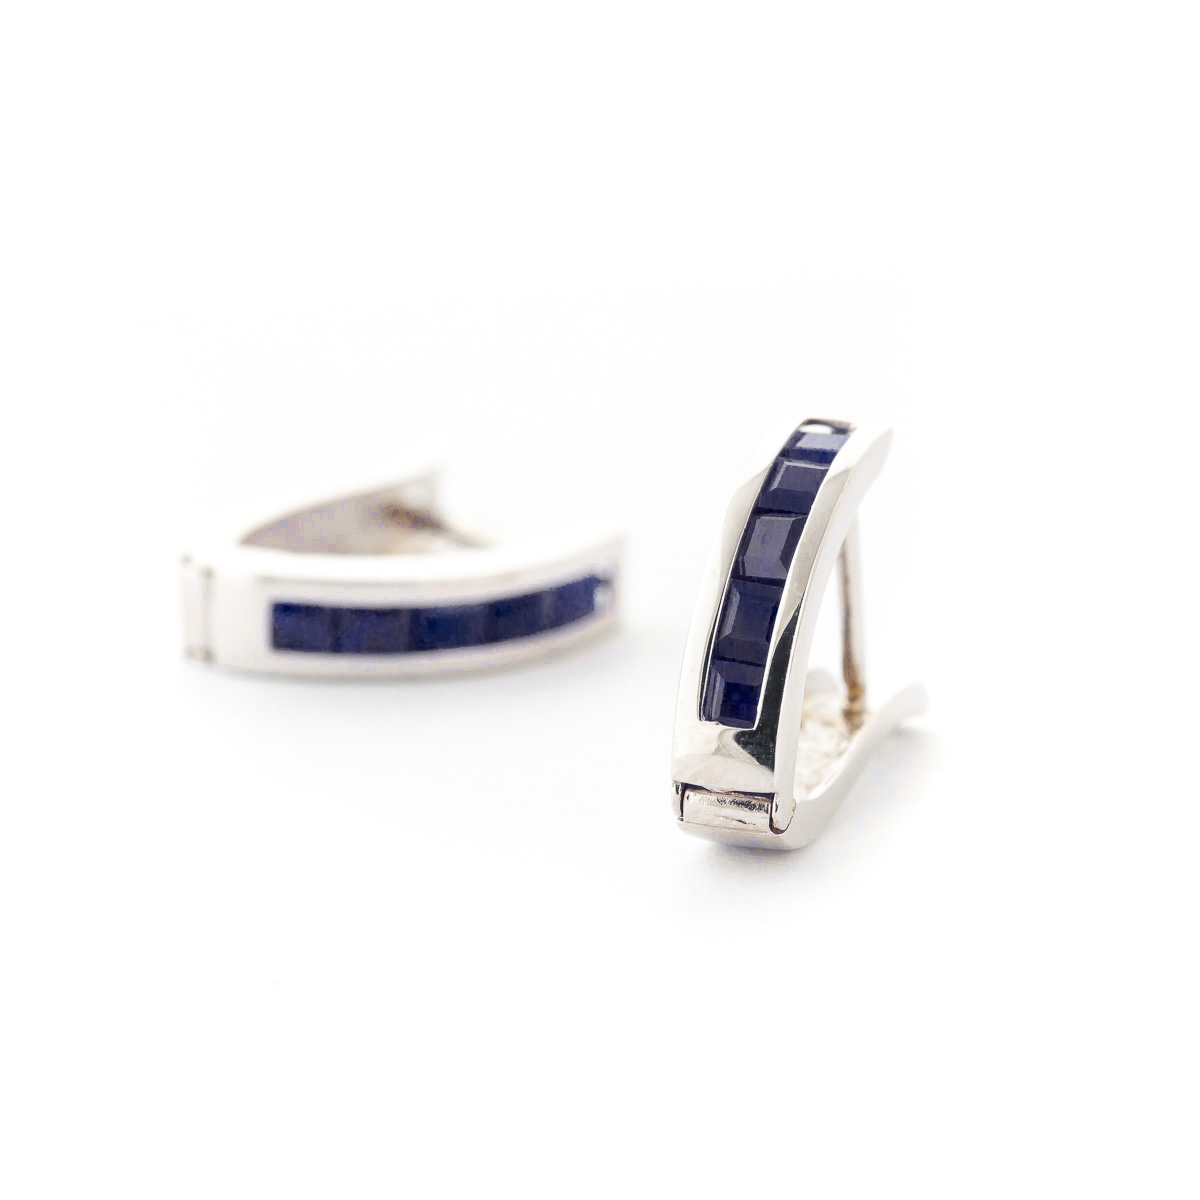 Sapphire Acute Huggie Earrings 1.3ctw in 14K White Gold